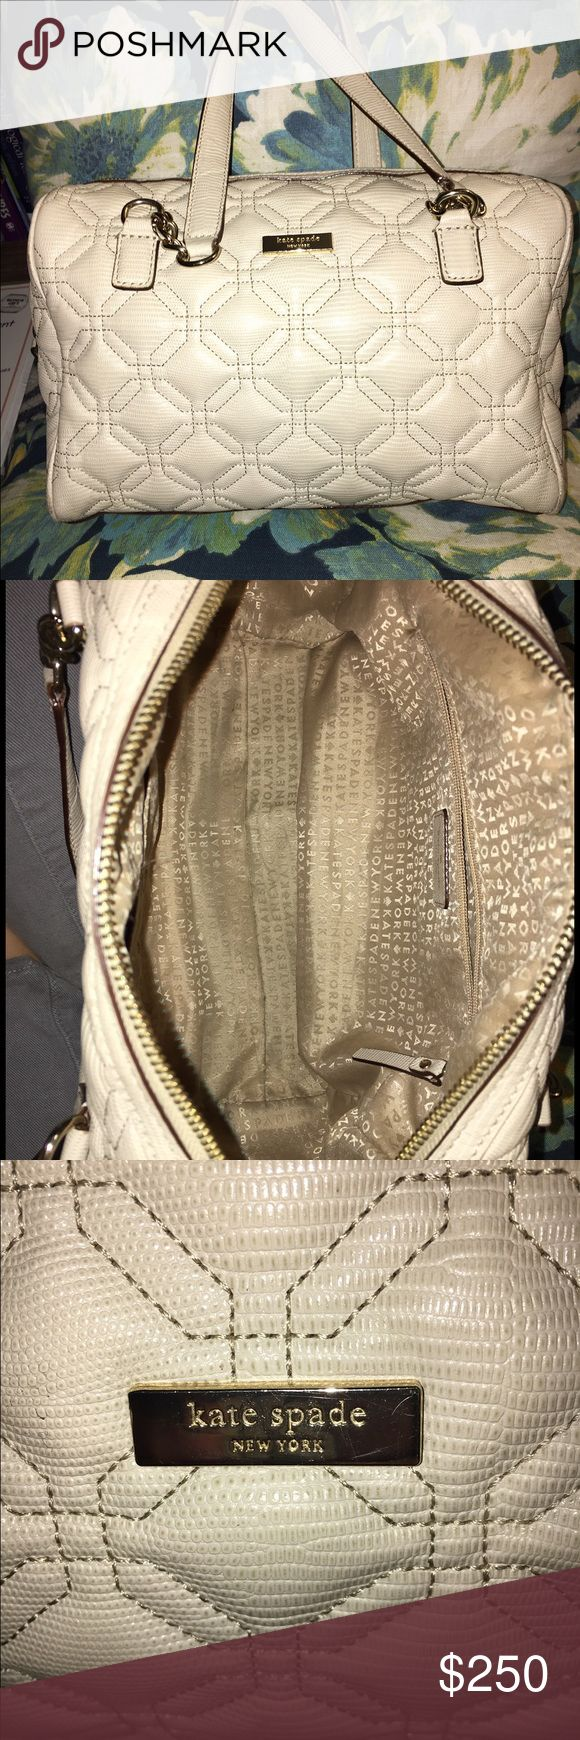 "⭐️MOVING SALE⭐️ Kate Spade quilted shoulder bag Kate Spade quilted shoulder bag in cream color. Very gently used with minimal to no signs of wear. Slight blemish on interior, one slight marking on exterior that is virtually imperceptible (pictured). Worn only 2-3 times. In excellent condition from smoke free home. Measures approximately 12"" x 8"" x 5"". Purchased for $398 kate spade Bags Shoulder Bags"